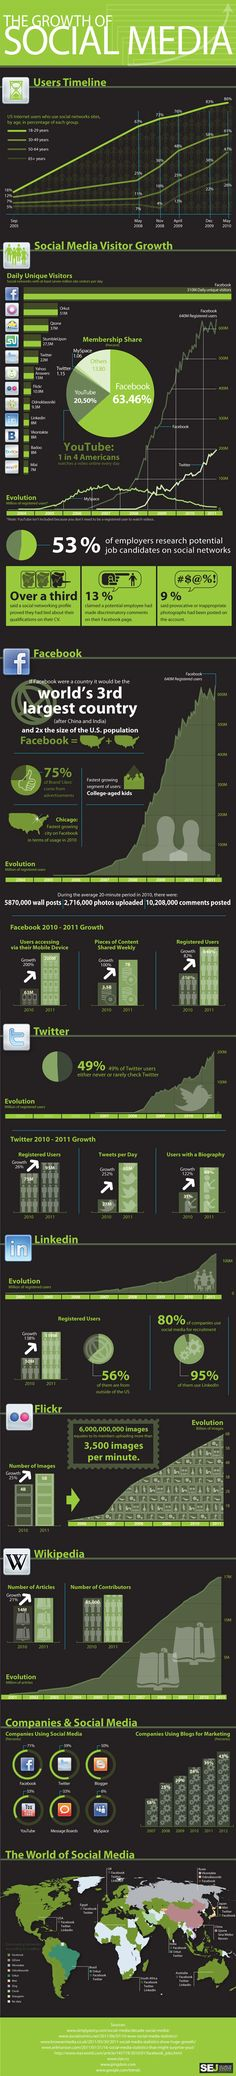 The Growth Of Social Media The Growth Of is amazing. As the infographic shows, businesses now can't afford to not be on social media.The Growth Of is amazing. As the infographic shows, businesses now can't afford to not be on social media. Inbound Marketing, Marketing Digital, Marketing Trends, Content Marketing, Internet Marketing, Online Marketing, Social Media Marketing, Social Trends, Marketing Tools